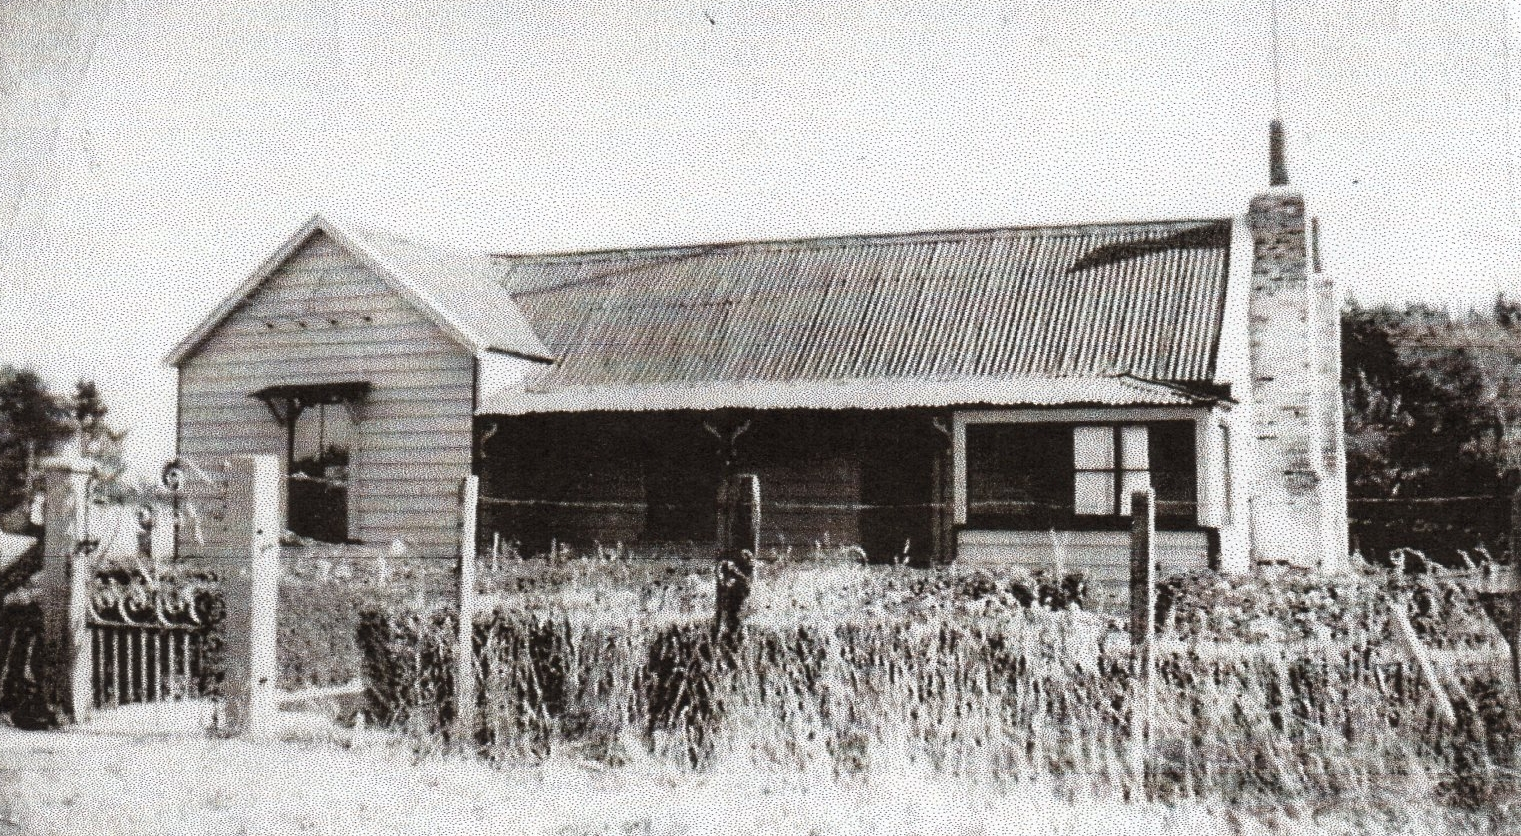 A  black and white photograph of the simple bungalow with corrugated iron roof.